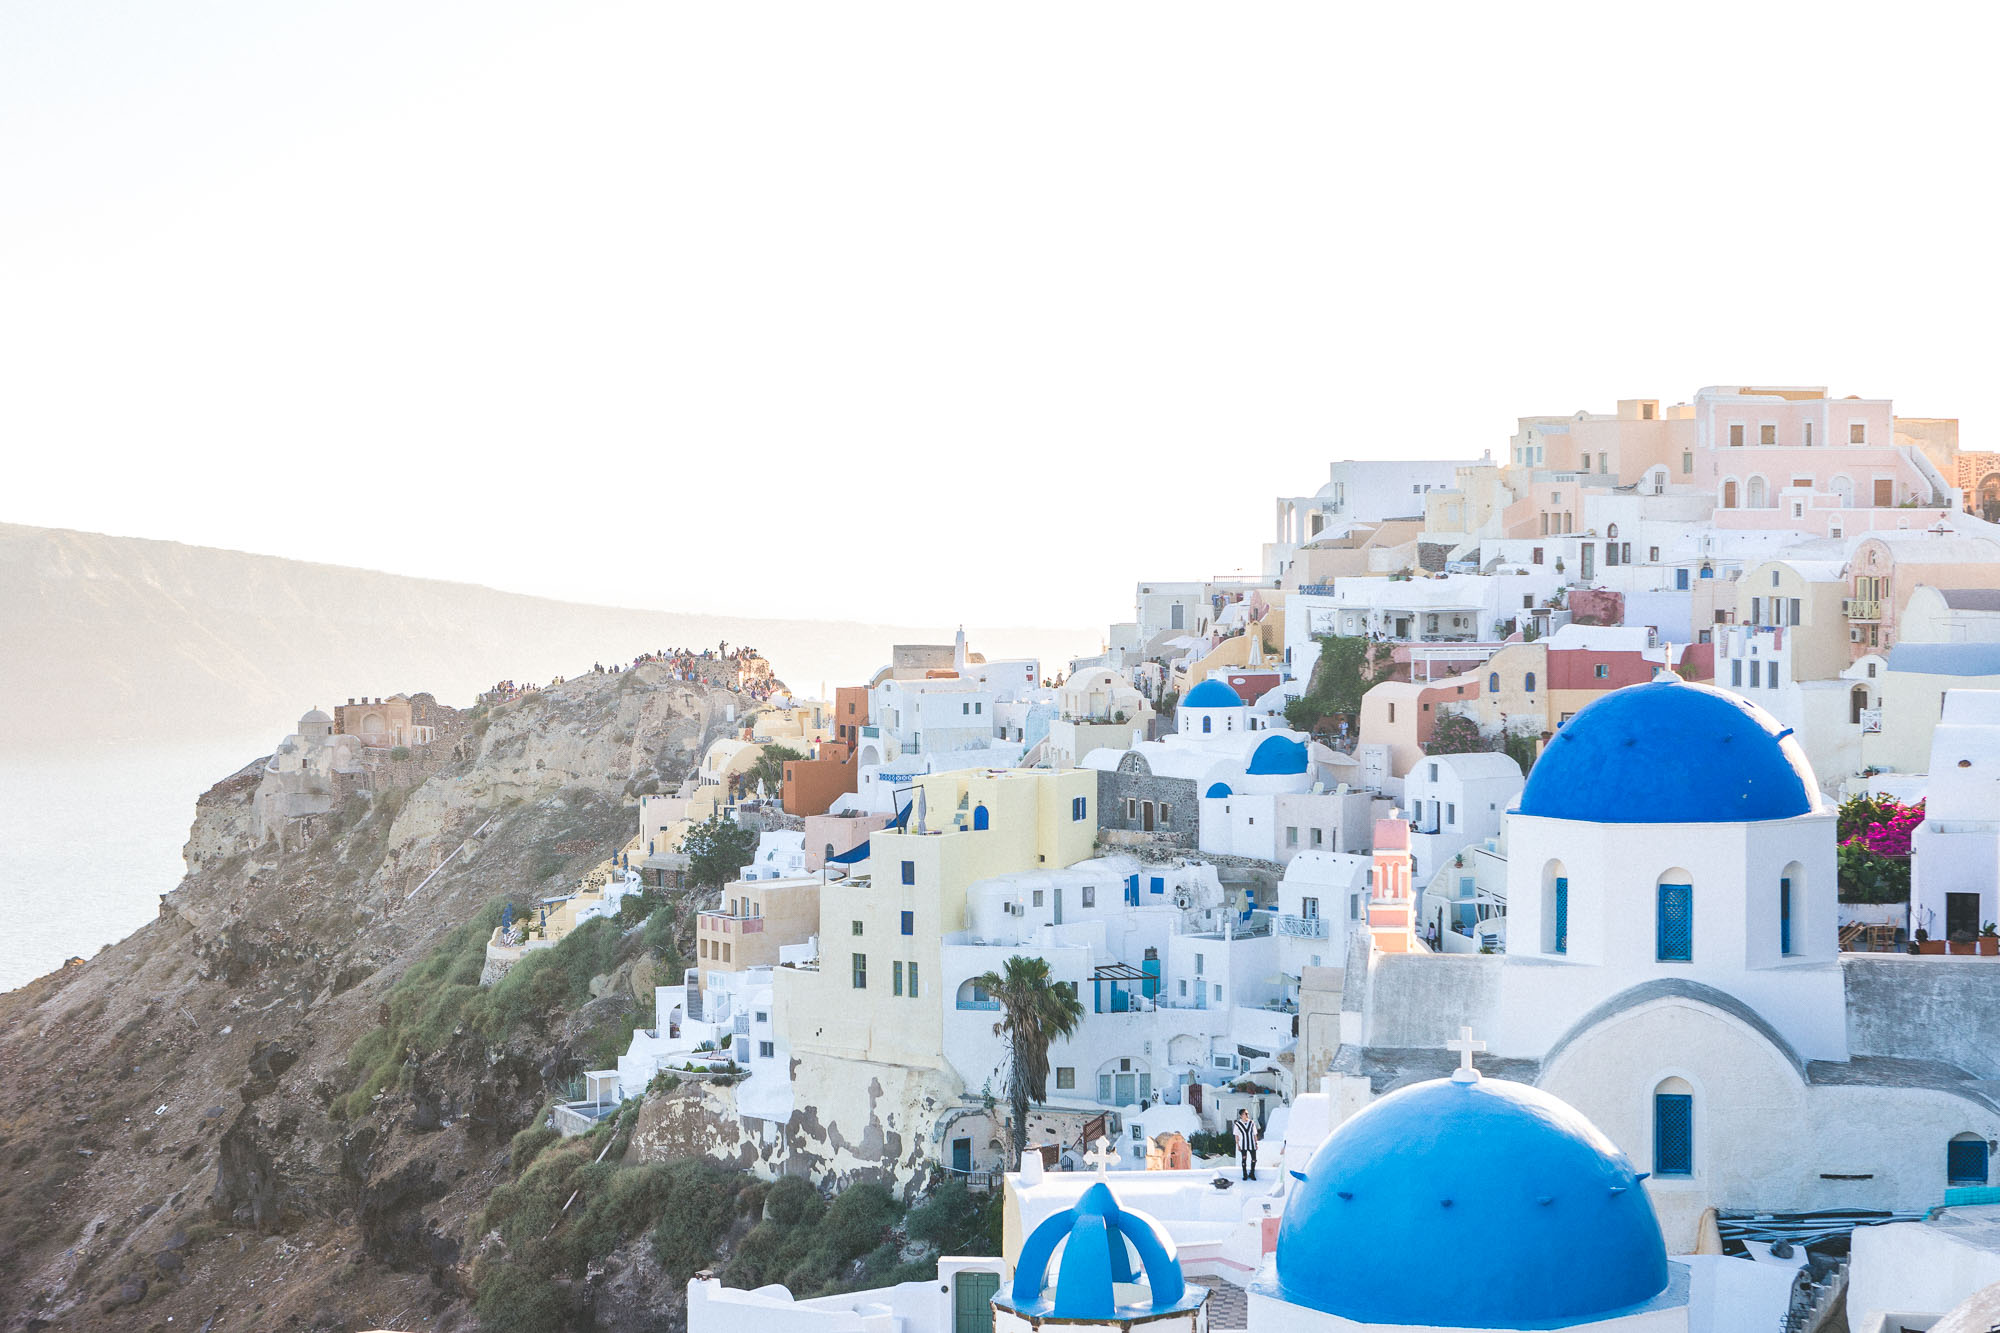 The Complete Santorini Greece Travel Guide Find Us Lost - 10 things to see and do on your trip to santorini greece